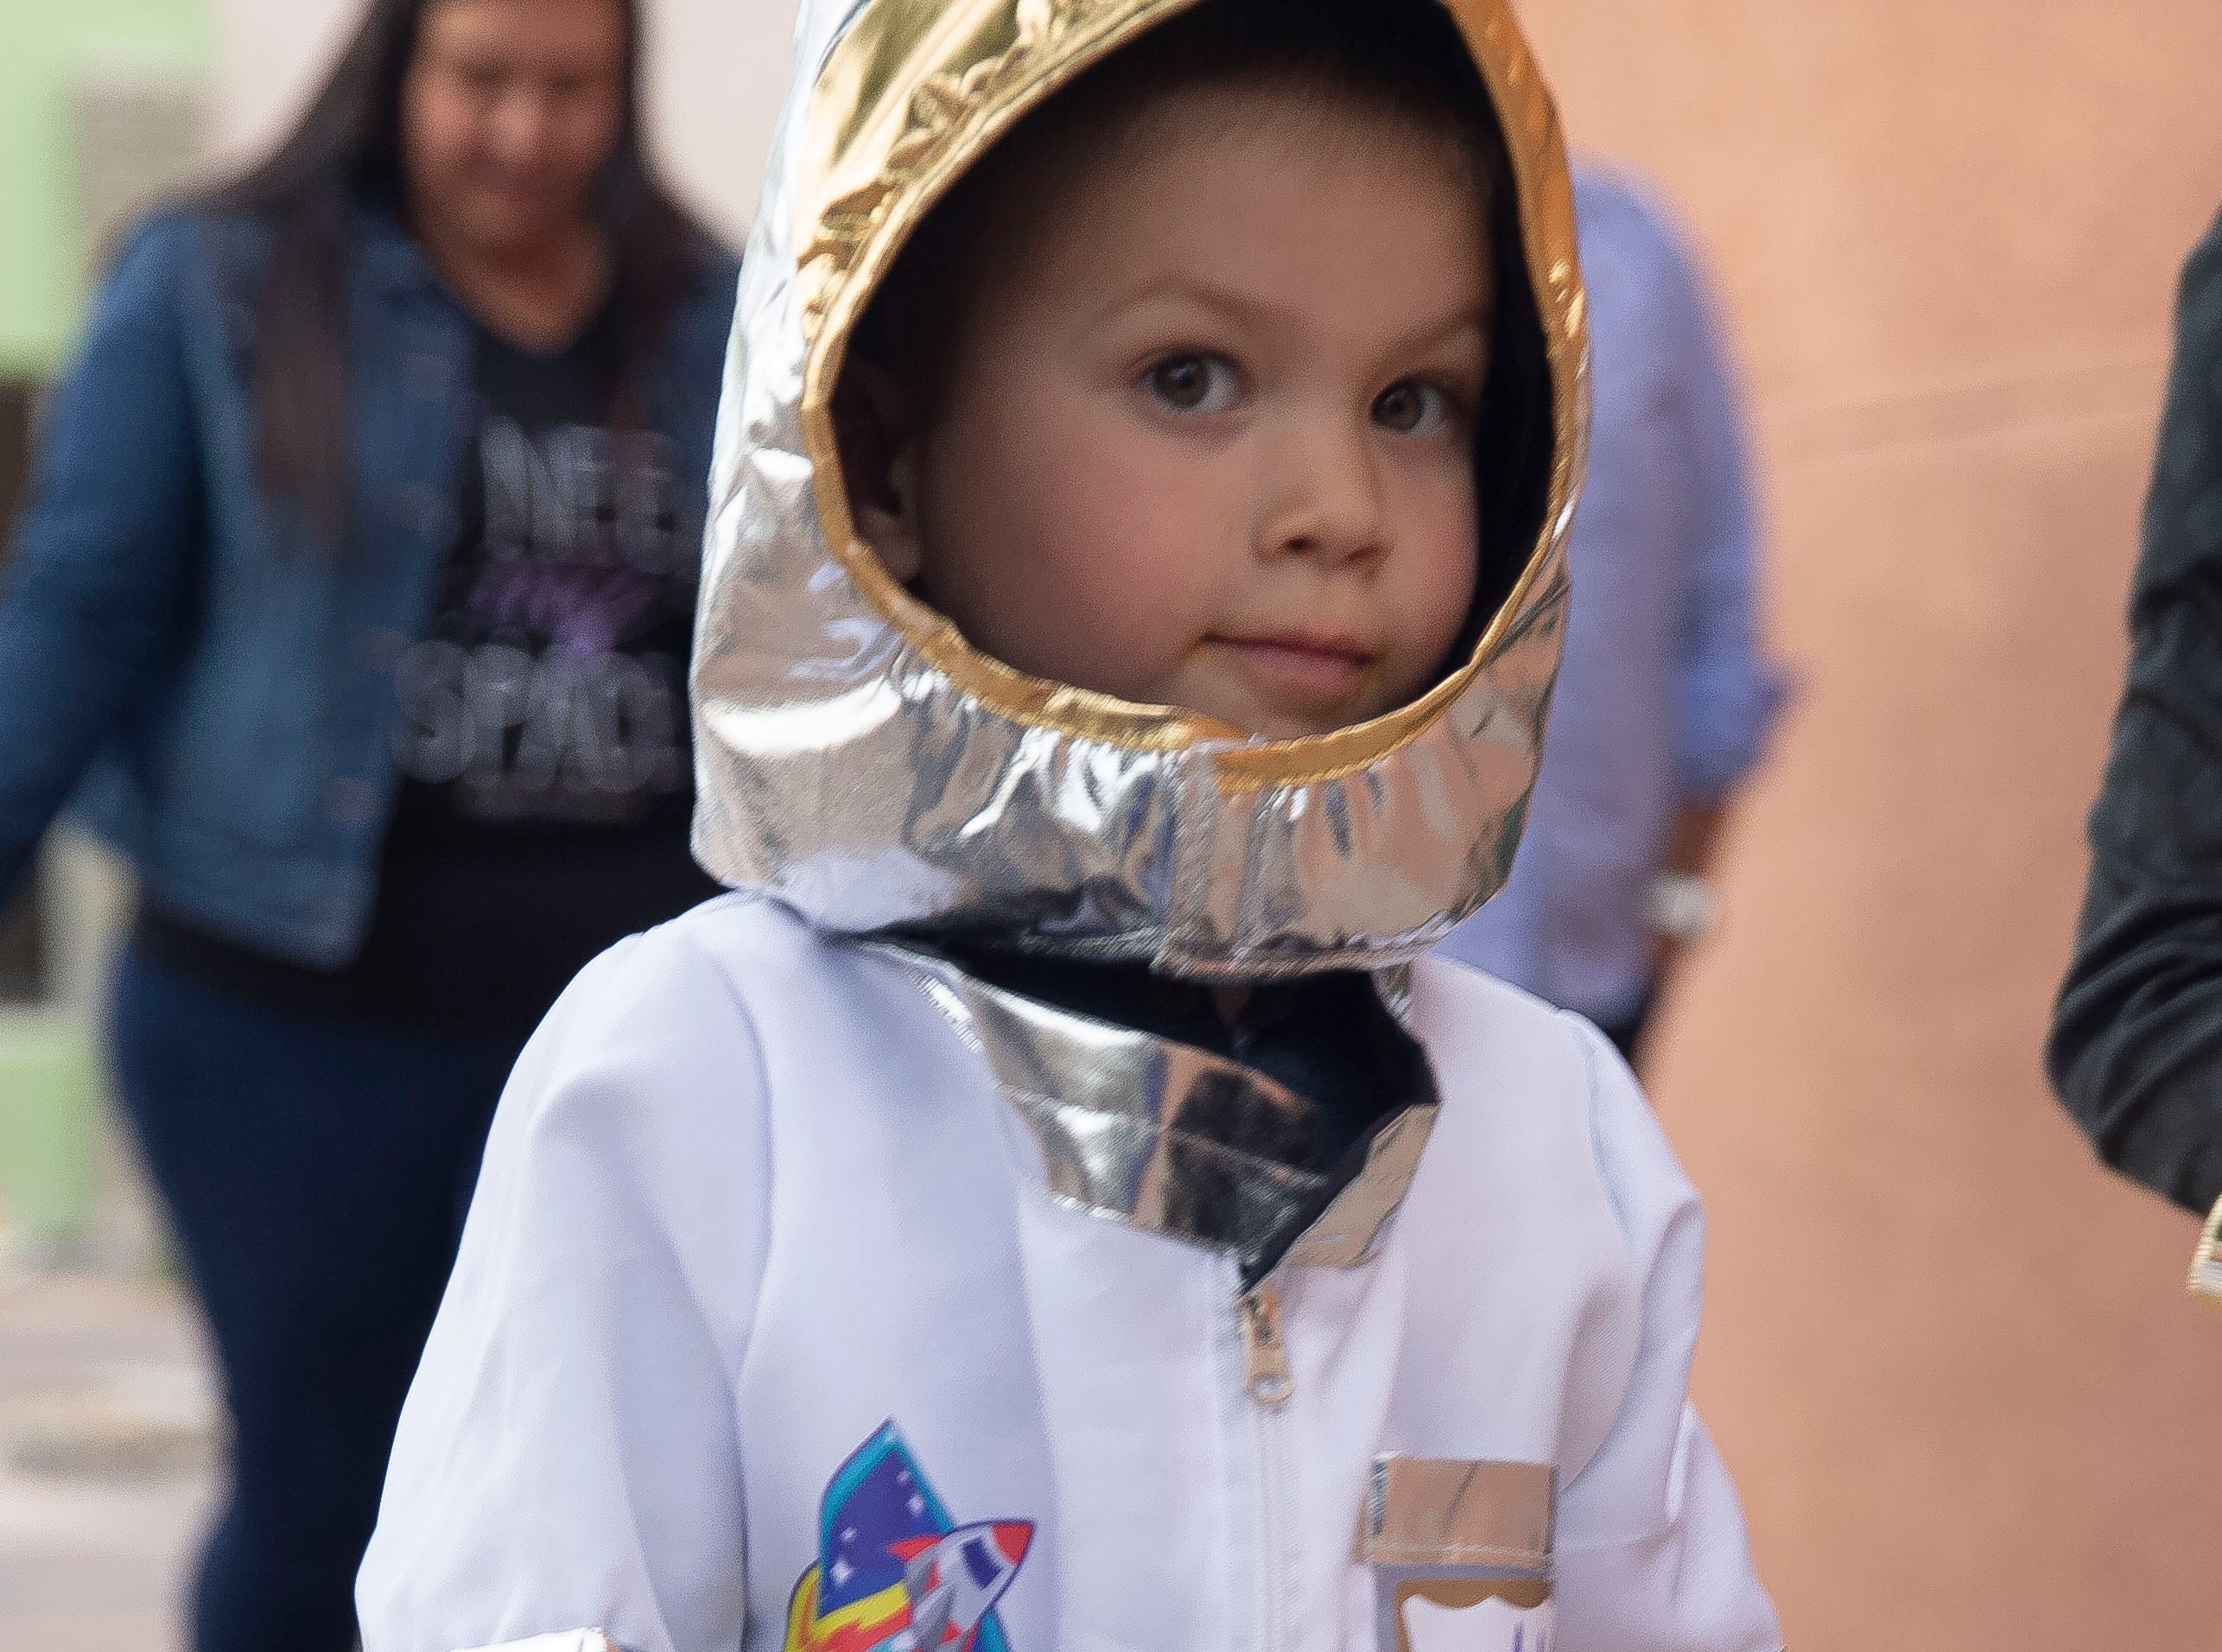 A young astronaut pretends to go on a space walk Friday, April 12, 2019 during the Space Walk in Las Cruces. The Space Walk is part of the Las Cruces Space Festival, and is aimed at getting children excited about the space industry.